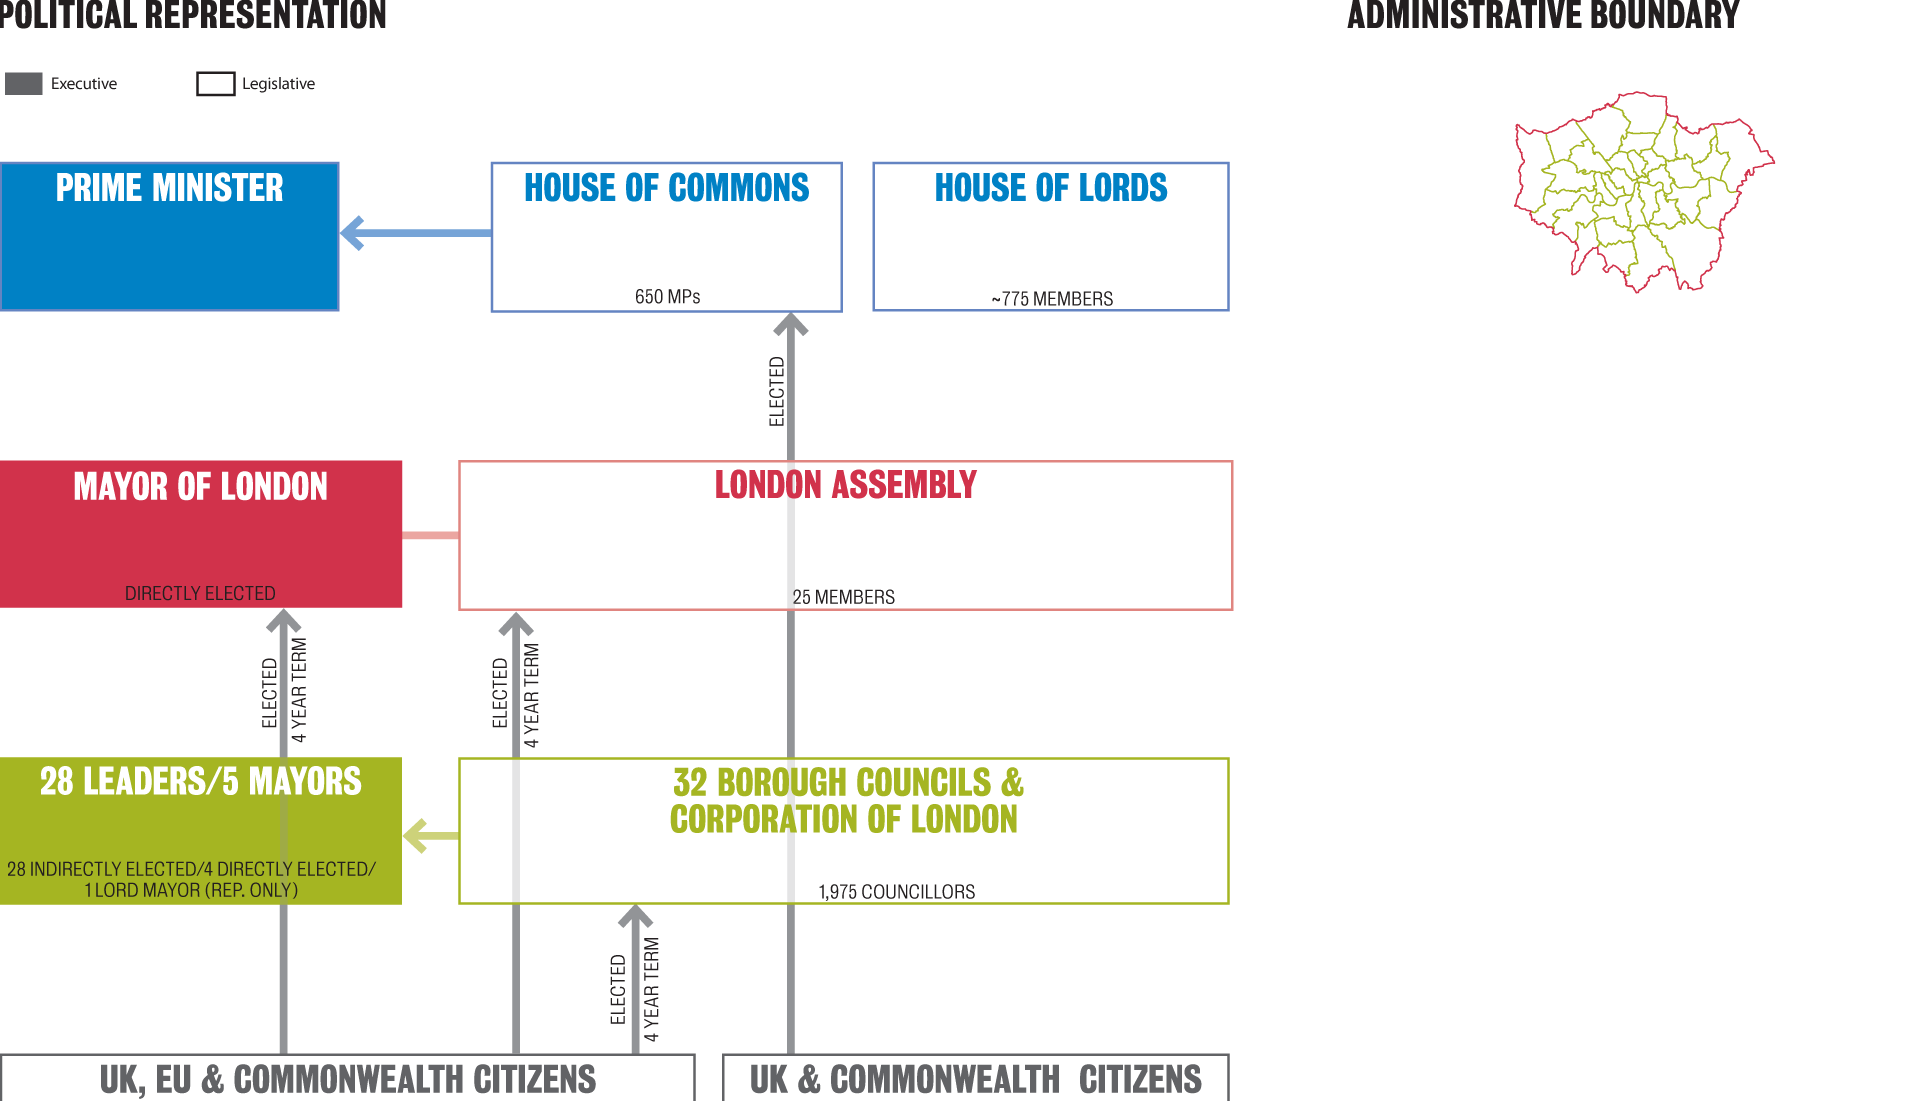 Governance structures - London - Representation + Boundary